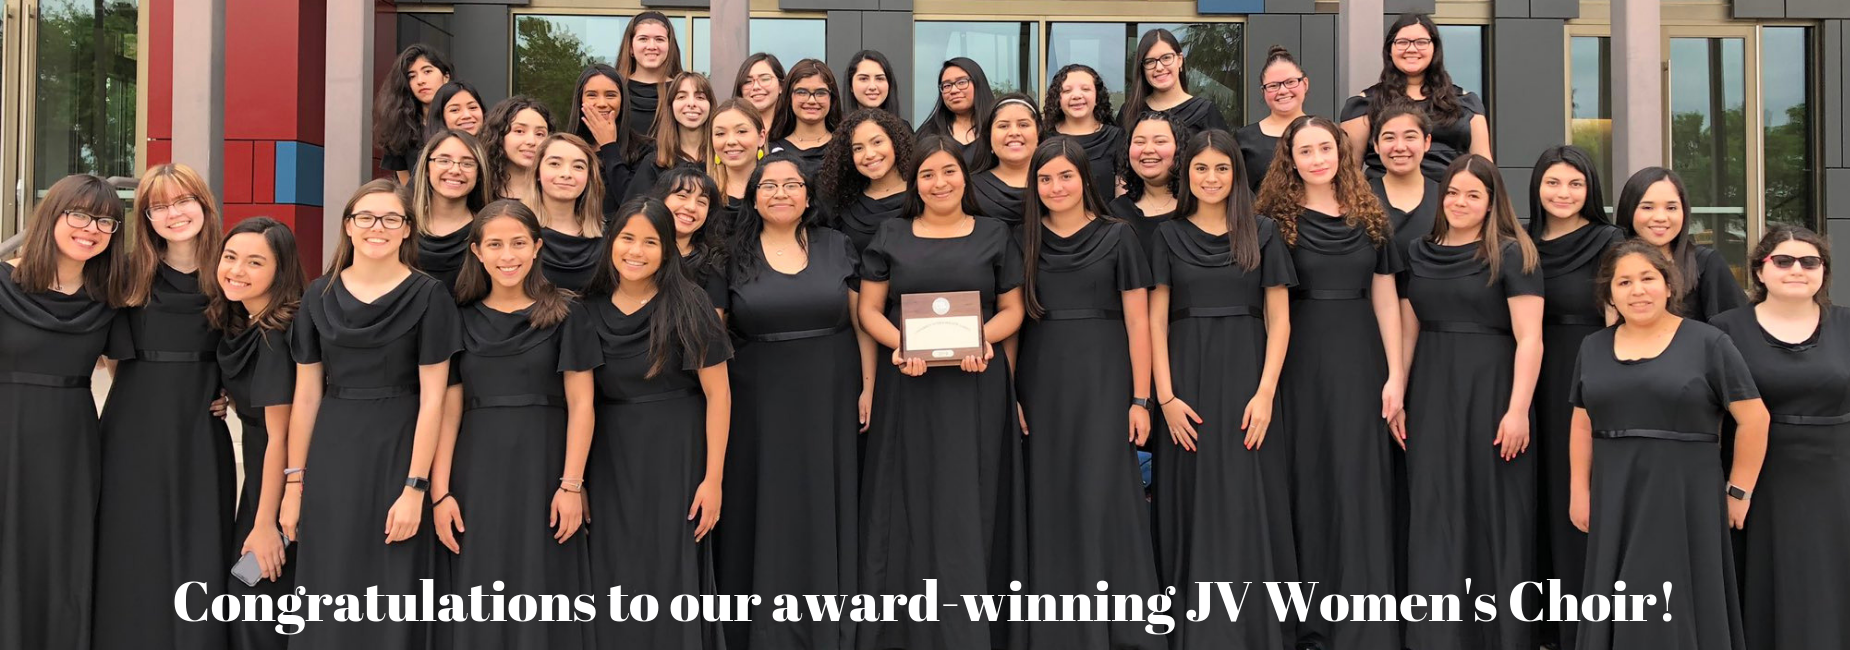 Ladies in gowns standing with gold award from UIL Choir competition